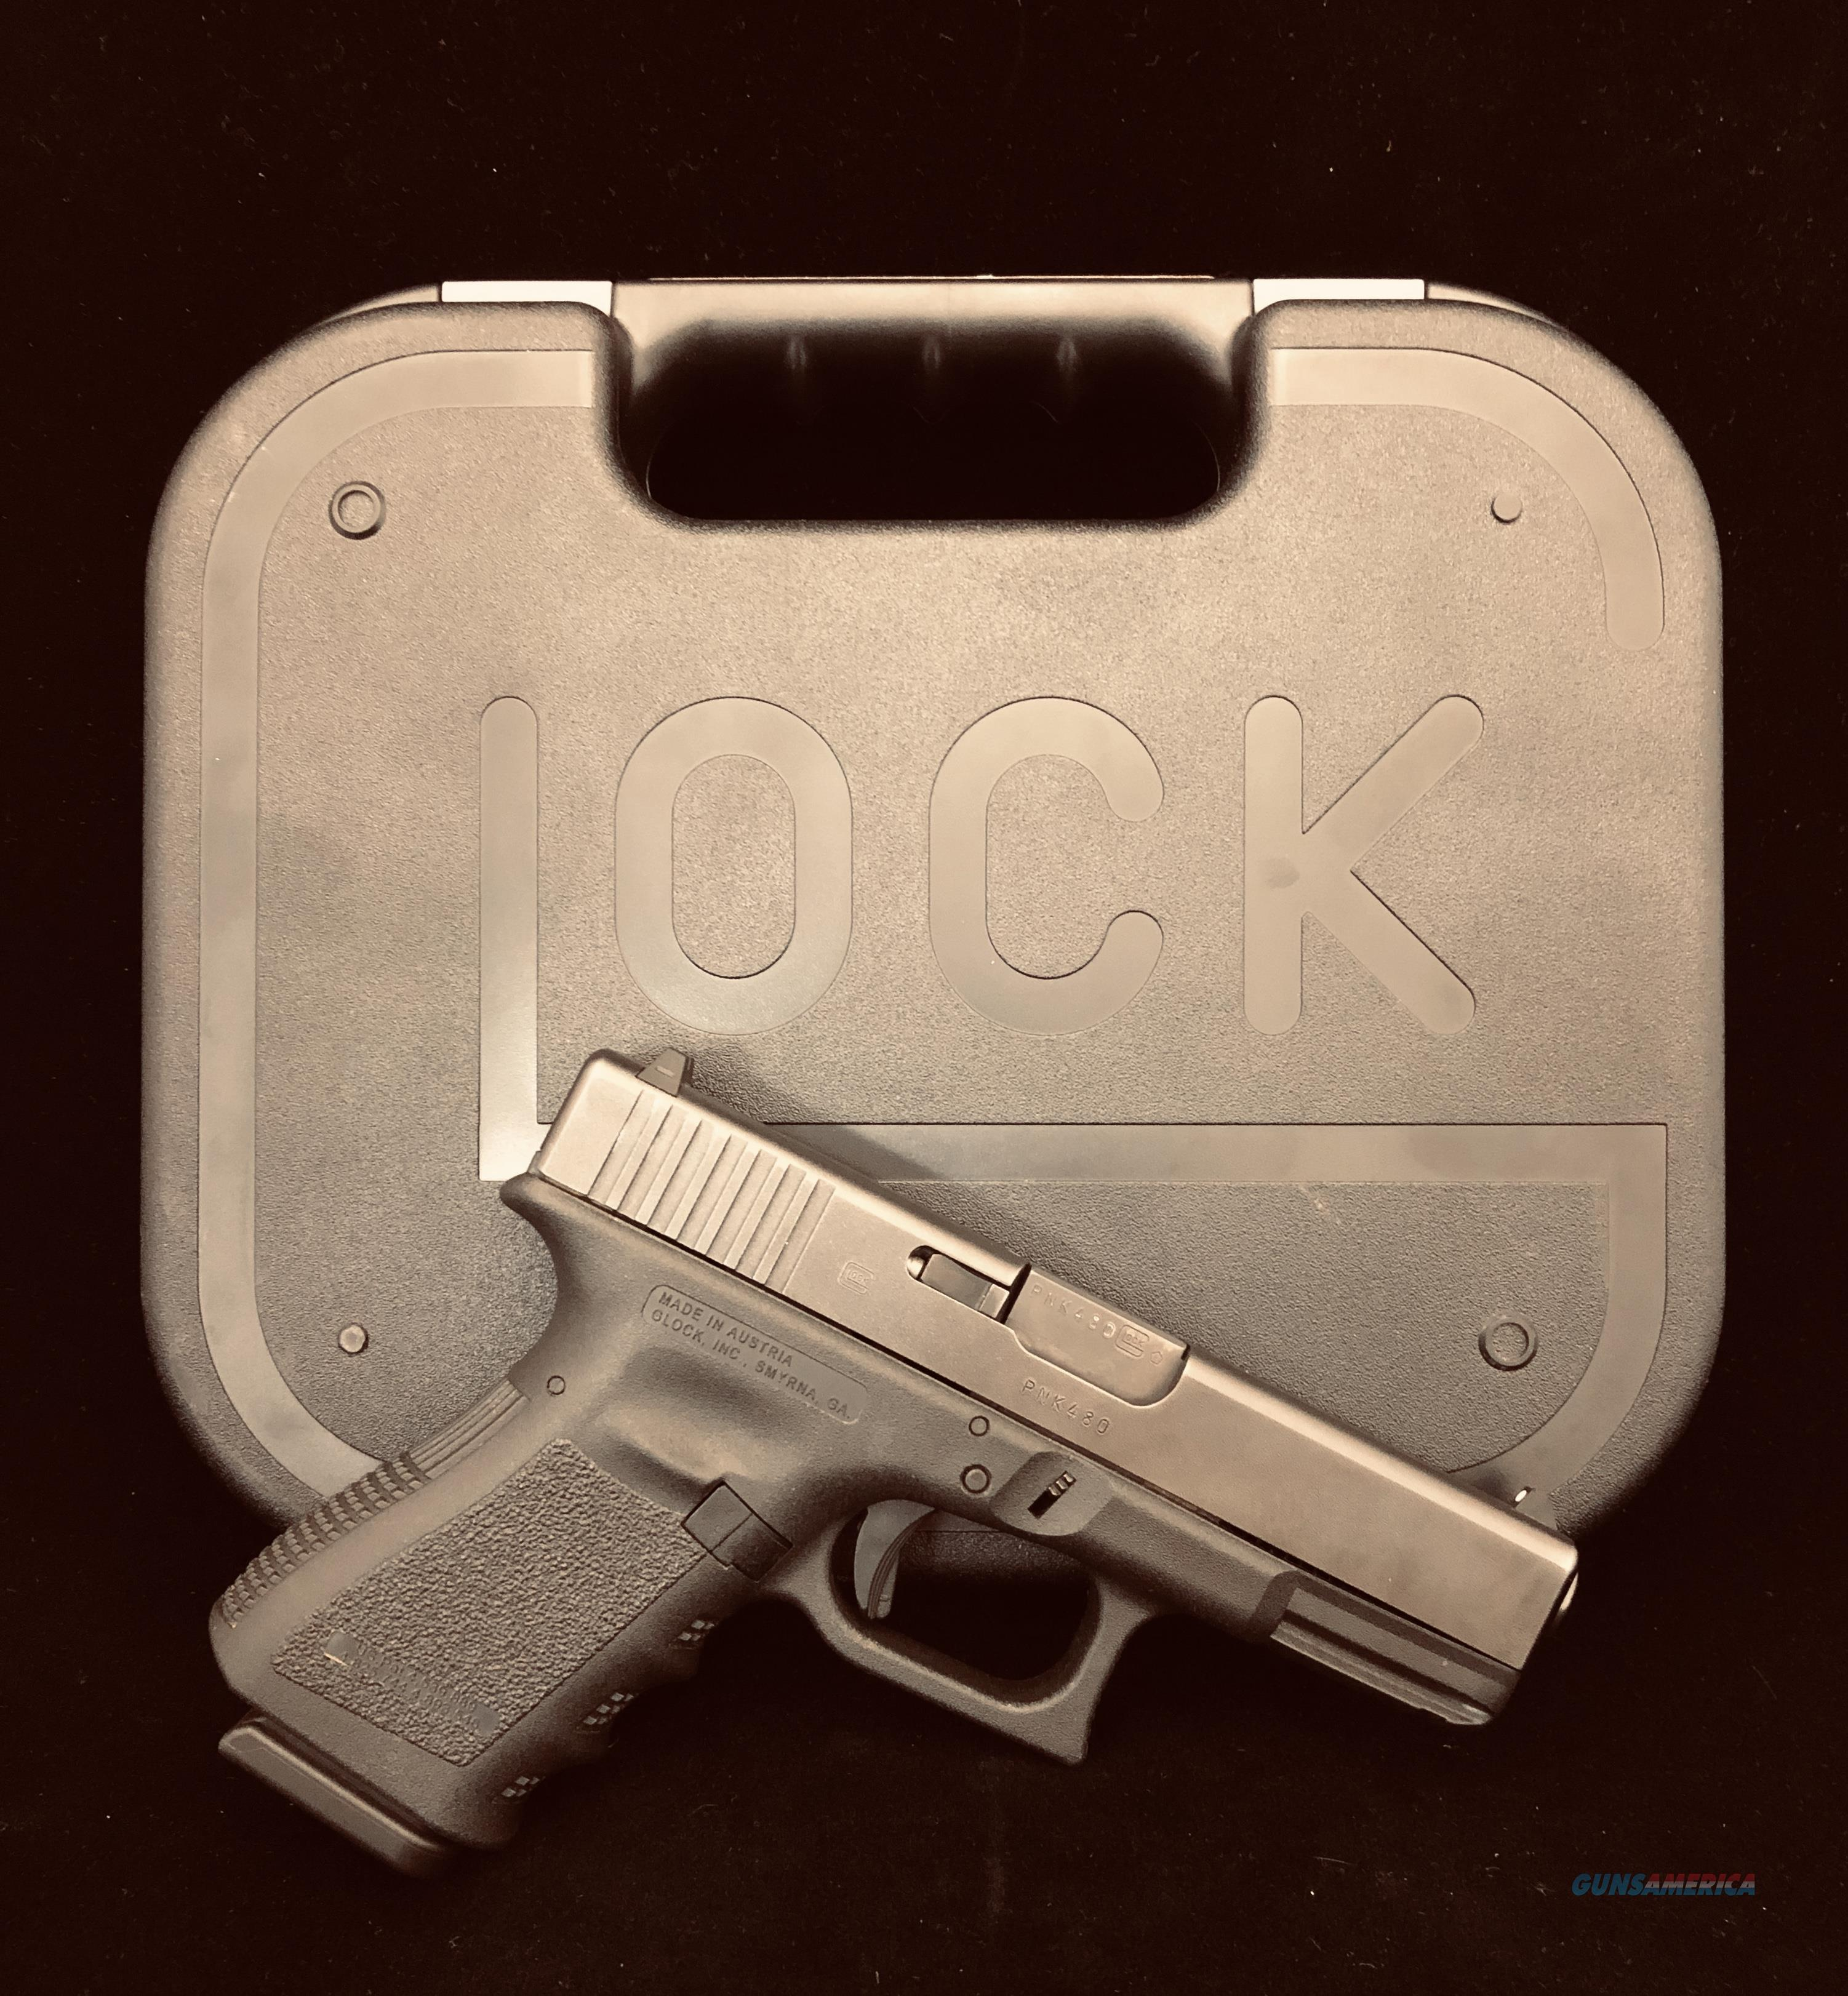 Glock Model 23 .40 cal with 2 mags 13 rds  Guns > Pistols > Glock Pistols > 23